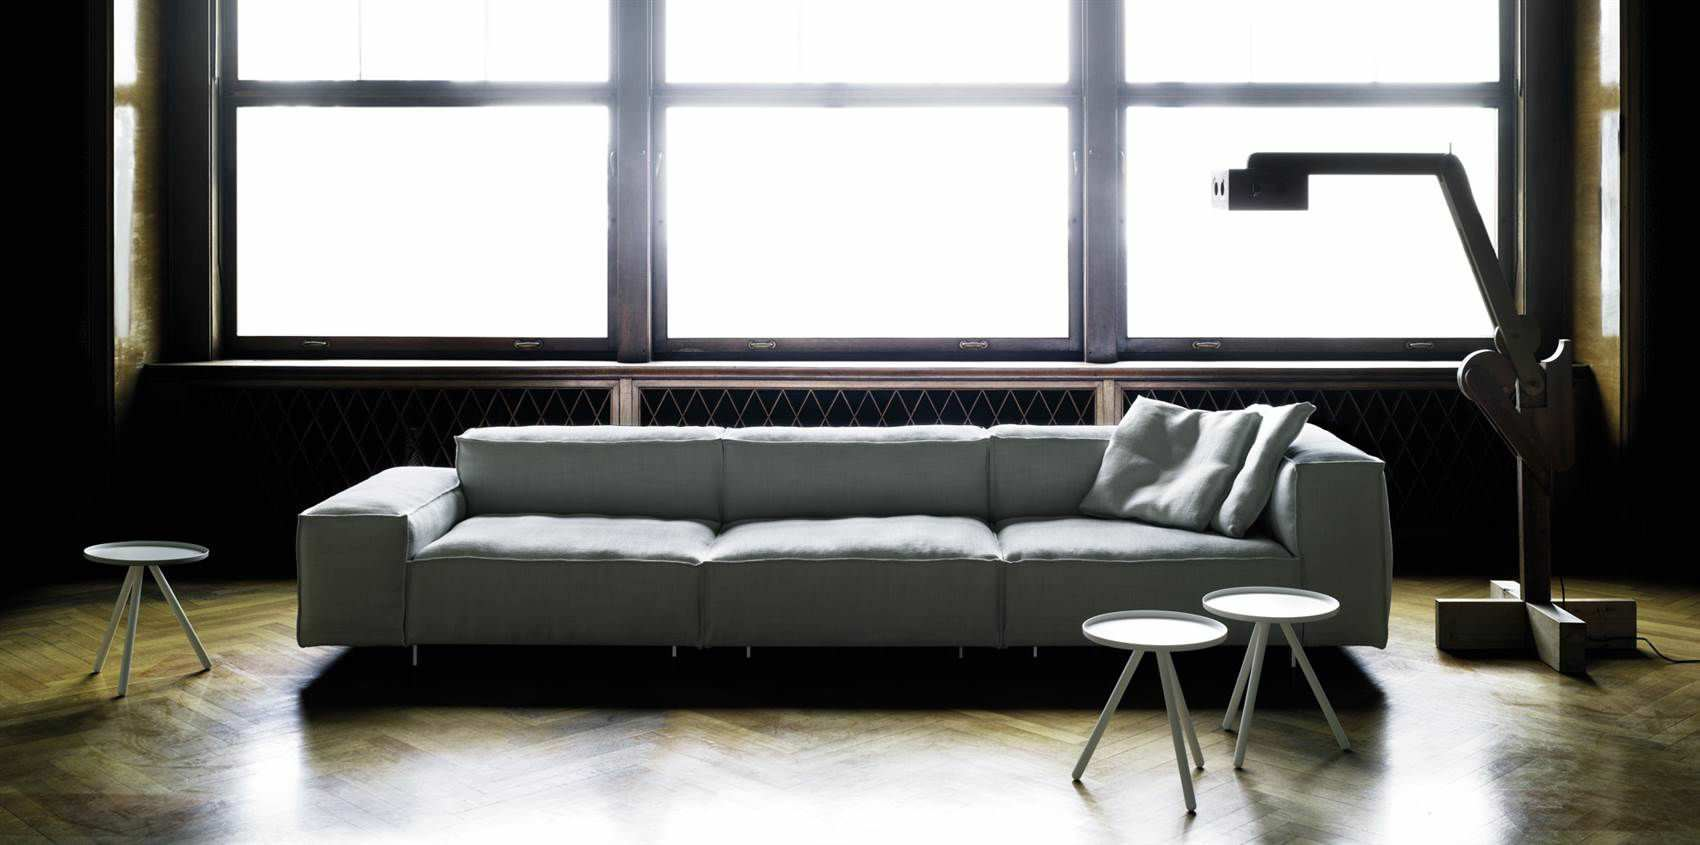 Living Divani Sofa Price Modular Sofa Contemporary By Piero Lissoni 3 Seater Neowall